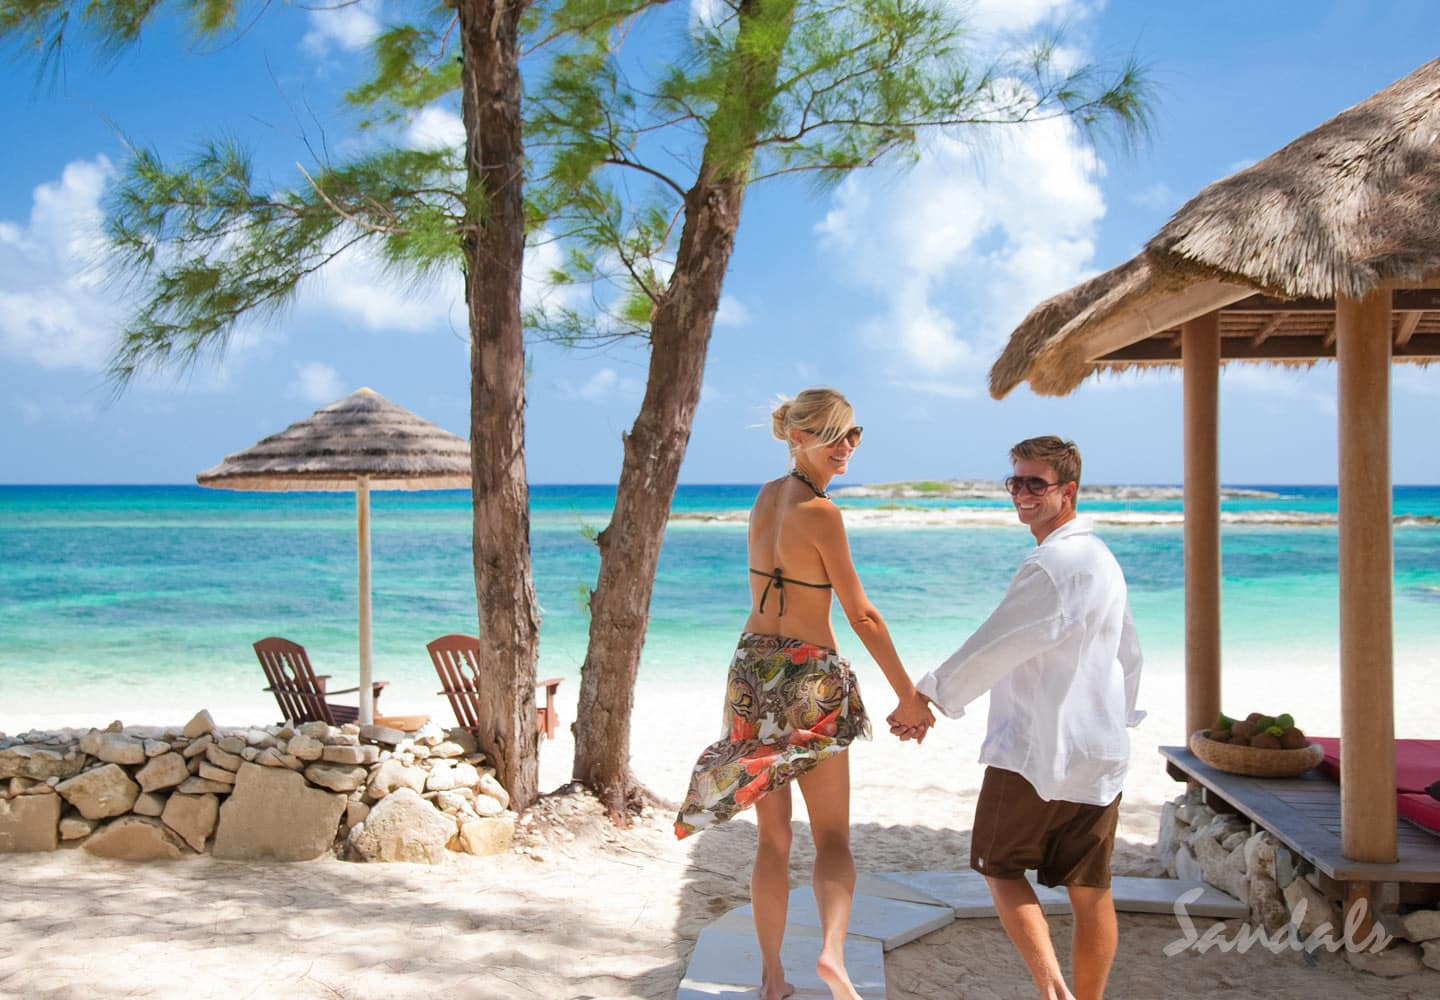 a couple on their honeymoon, holding hands, enjoying their luxury honeymoon vacation at the Sandals Royal Caribbean resort in Jamaica